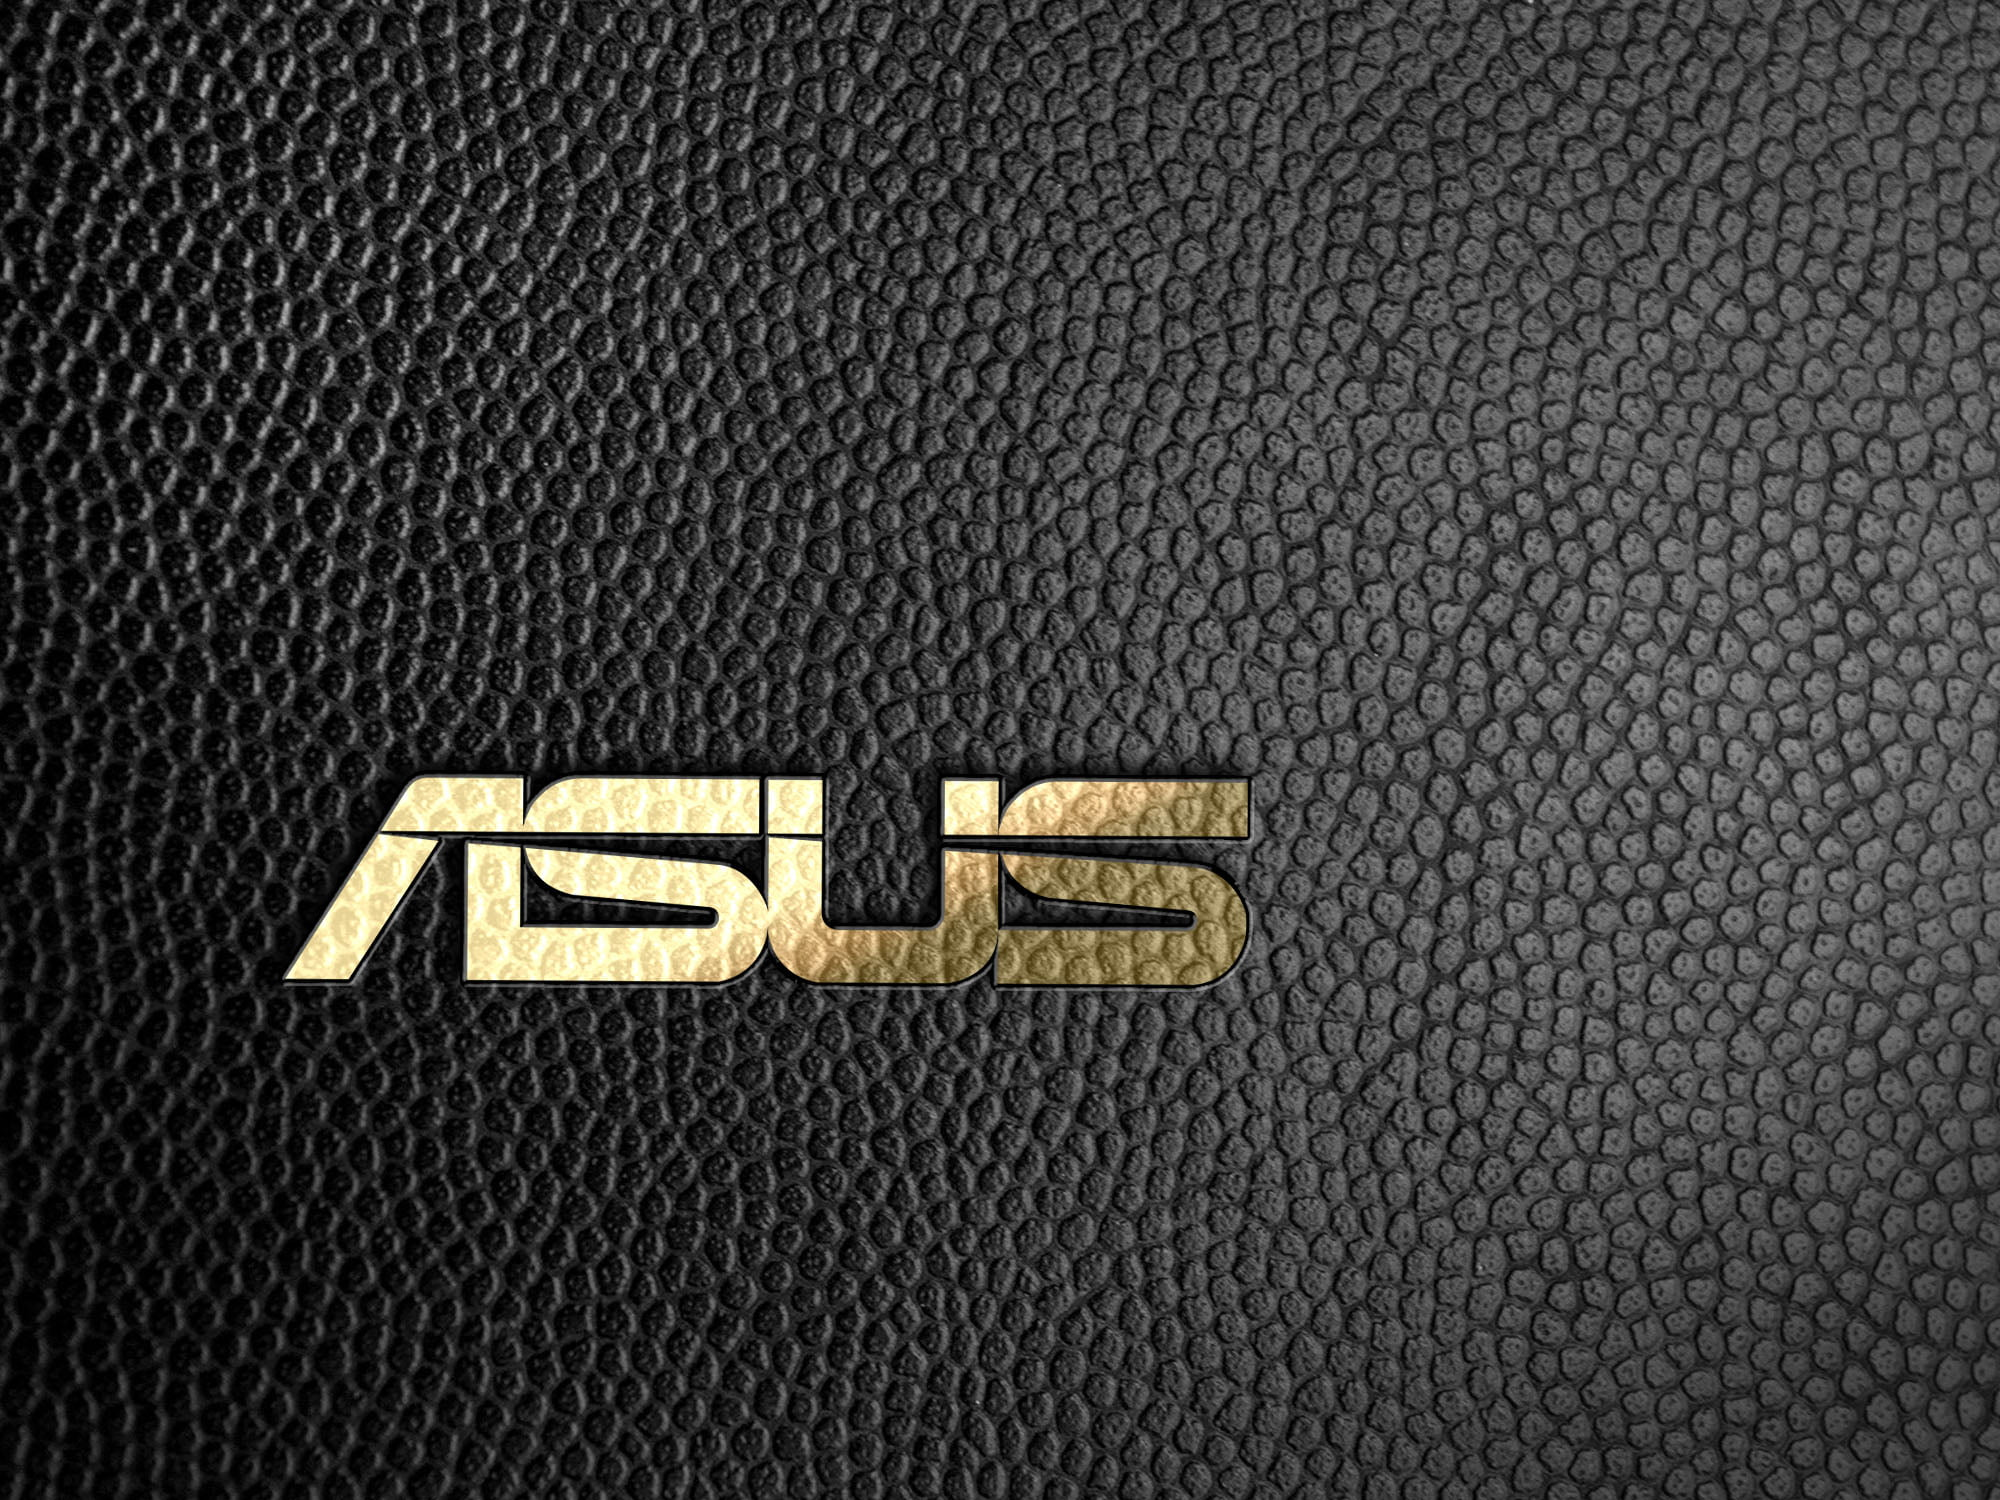 Asus logo on black leather